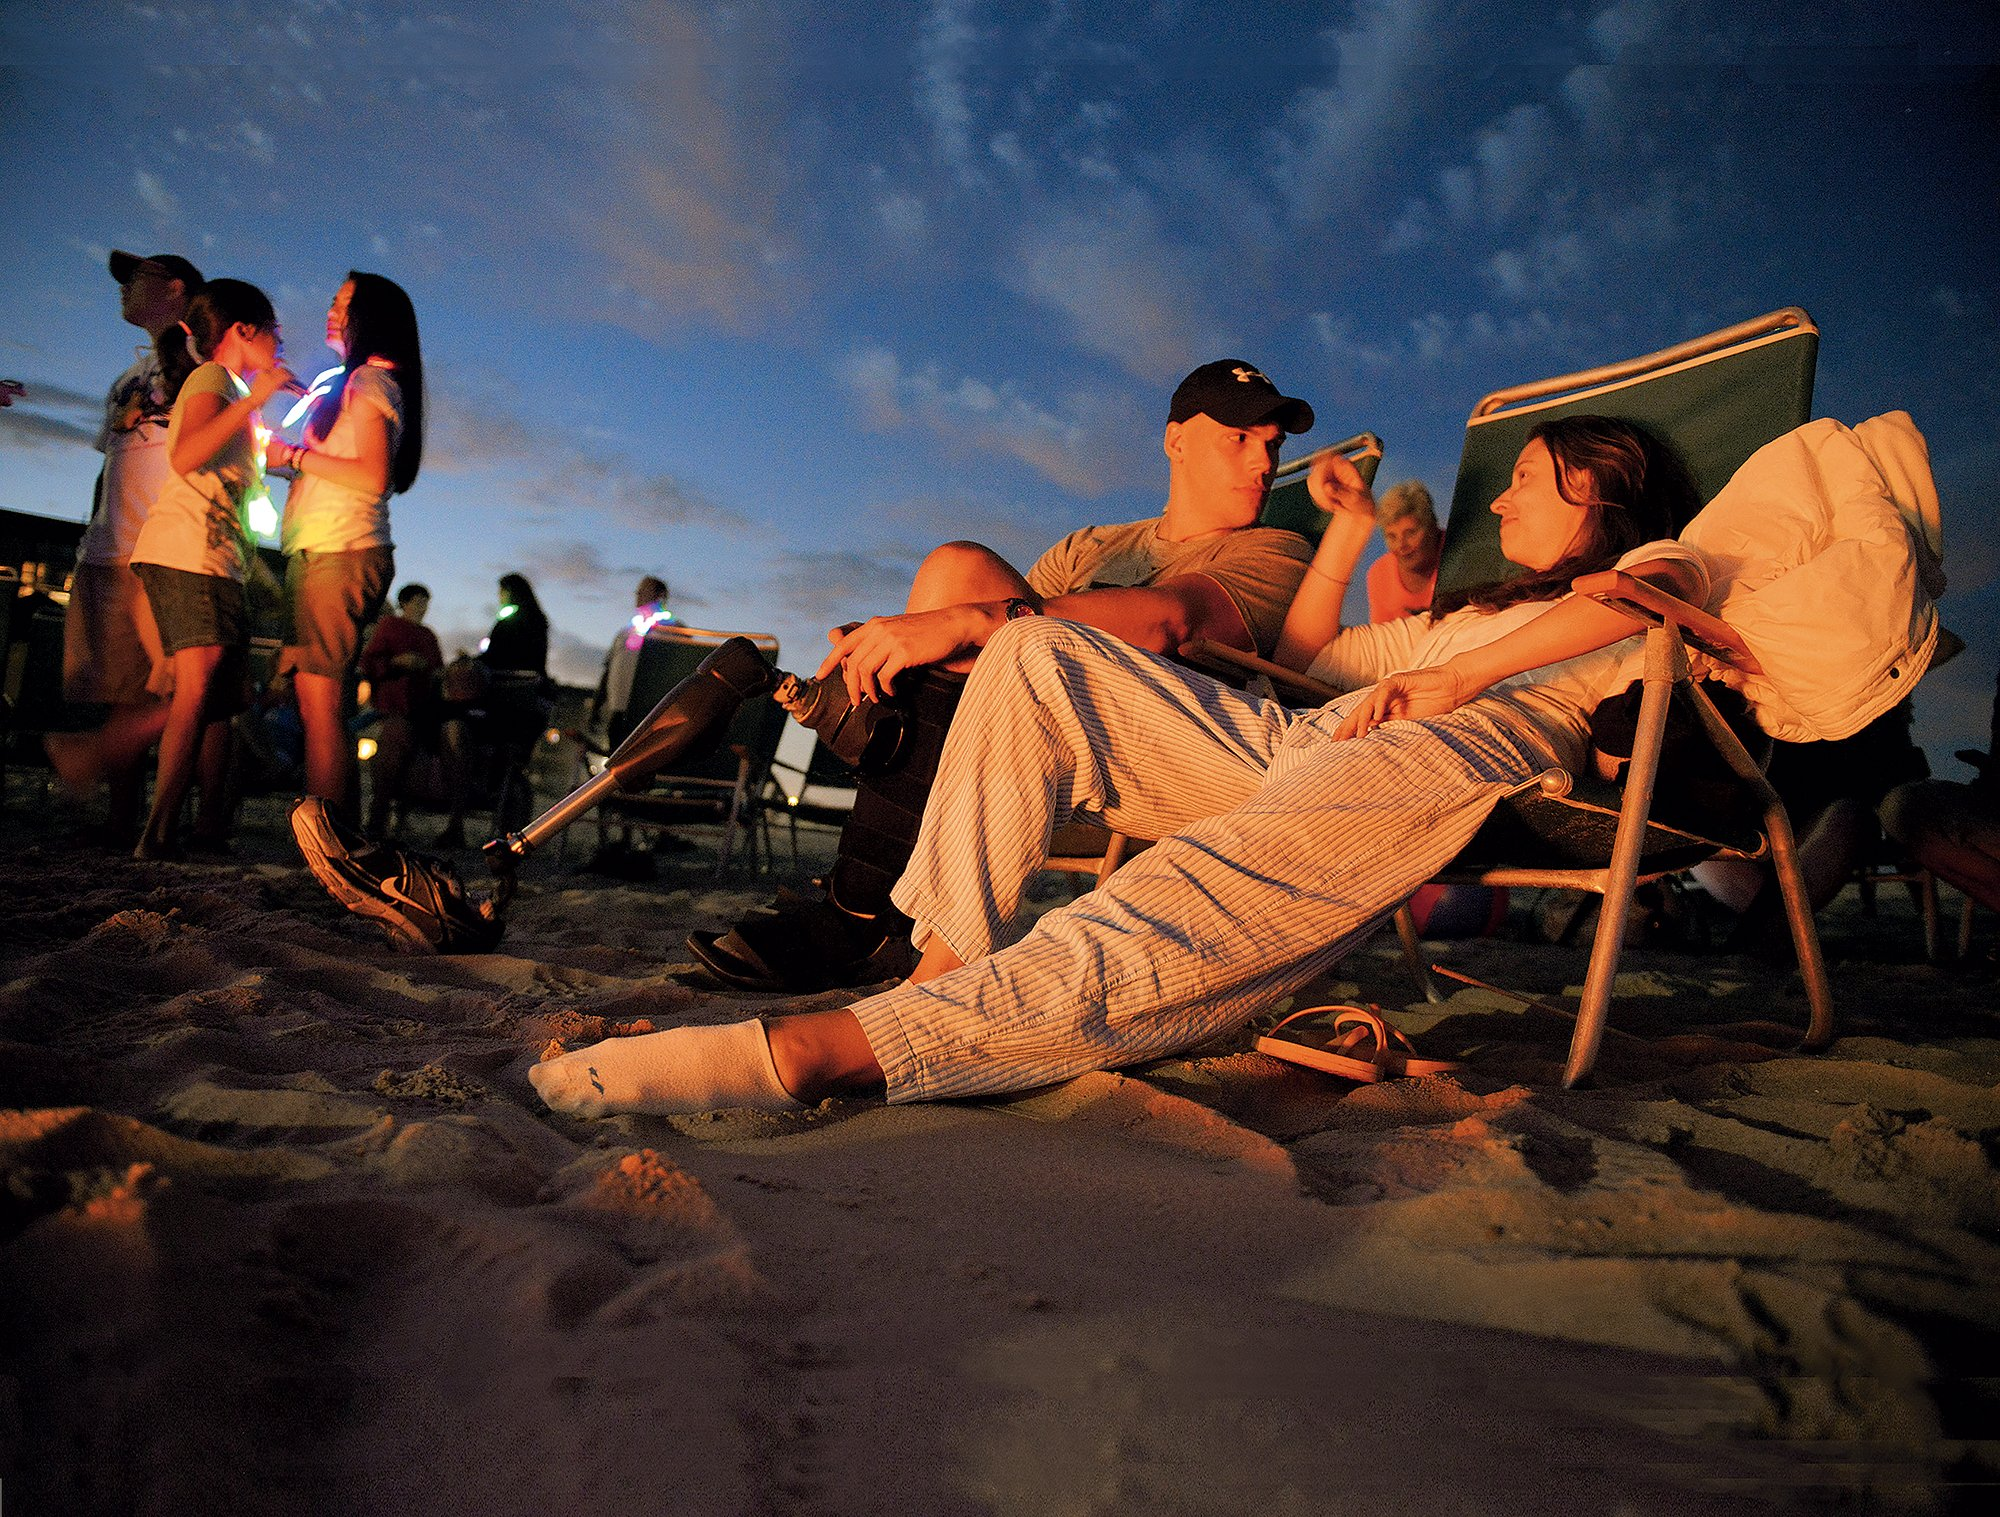 Family-Friendly Bethany offers lots of free evening Activities. Photograph by Bill O'Leary/Washington Post via Getty Images.